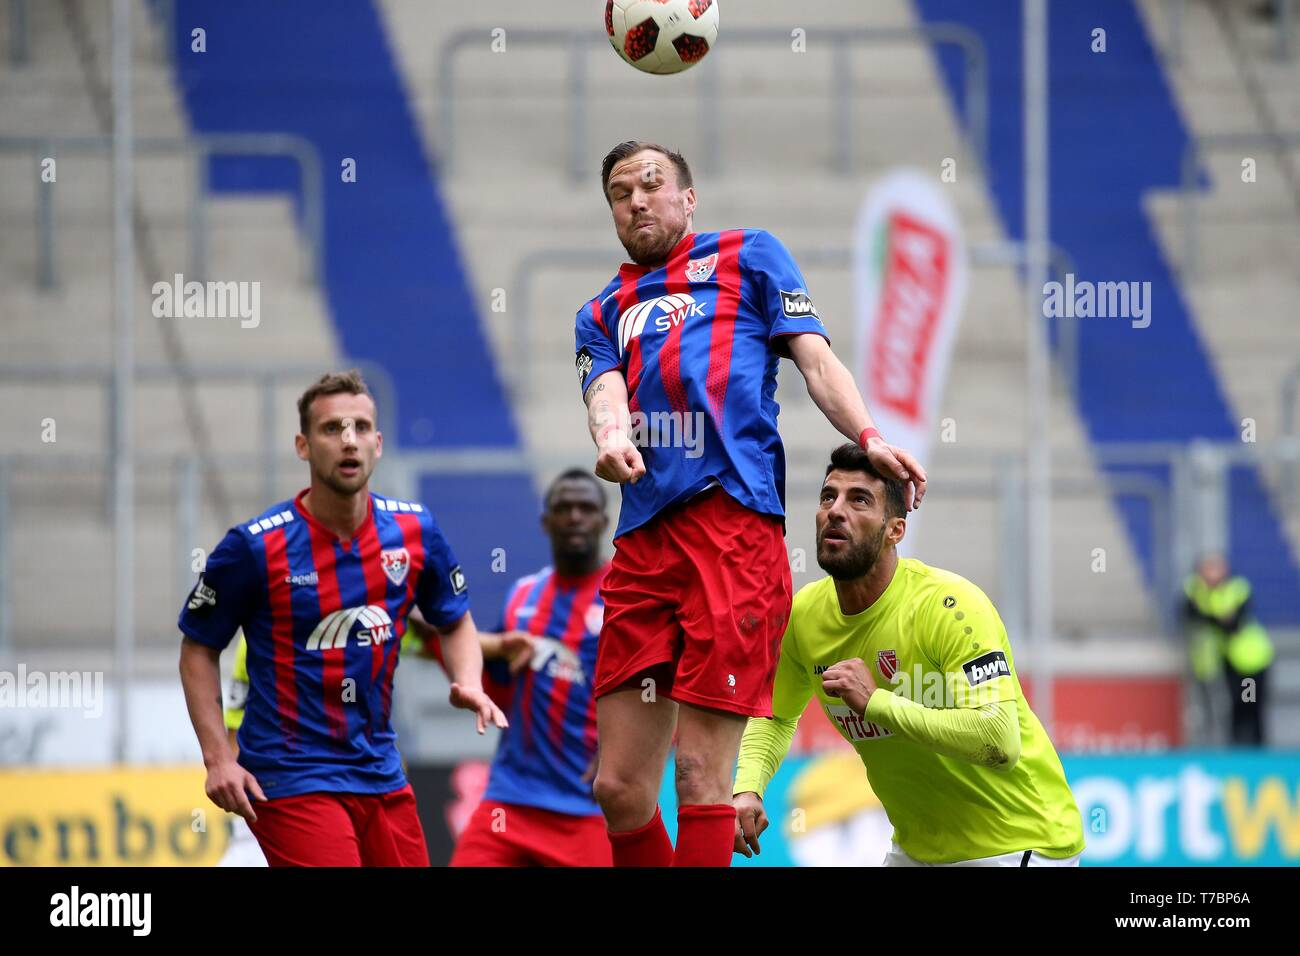 Duisburg, Deutschland. 05th May, 2019. firo: 05.05.2019 Football, 3. Bundesliga, season 2018/2019 KFC Uerdingen 05 - FC Energie Cottbus Kevin Grovukreutz (# 6, KFC Uerdingen 05) in the header duel with Jvºrgen Gjasula (# 35, FC Energie Cottbus) | usage worldwide Credit: dpa/Alamy Live News - Stock Image